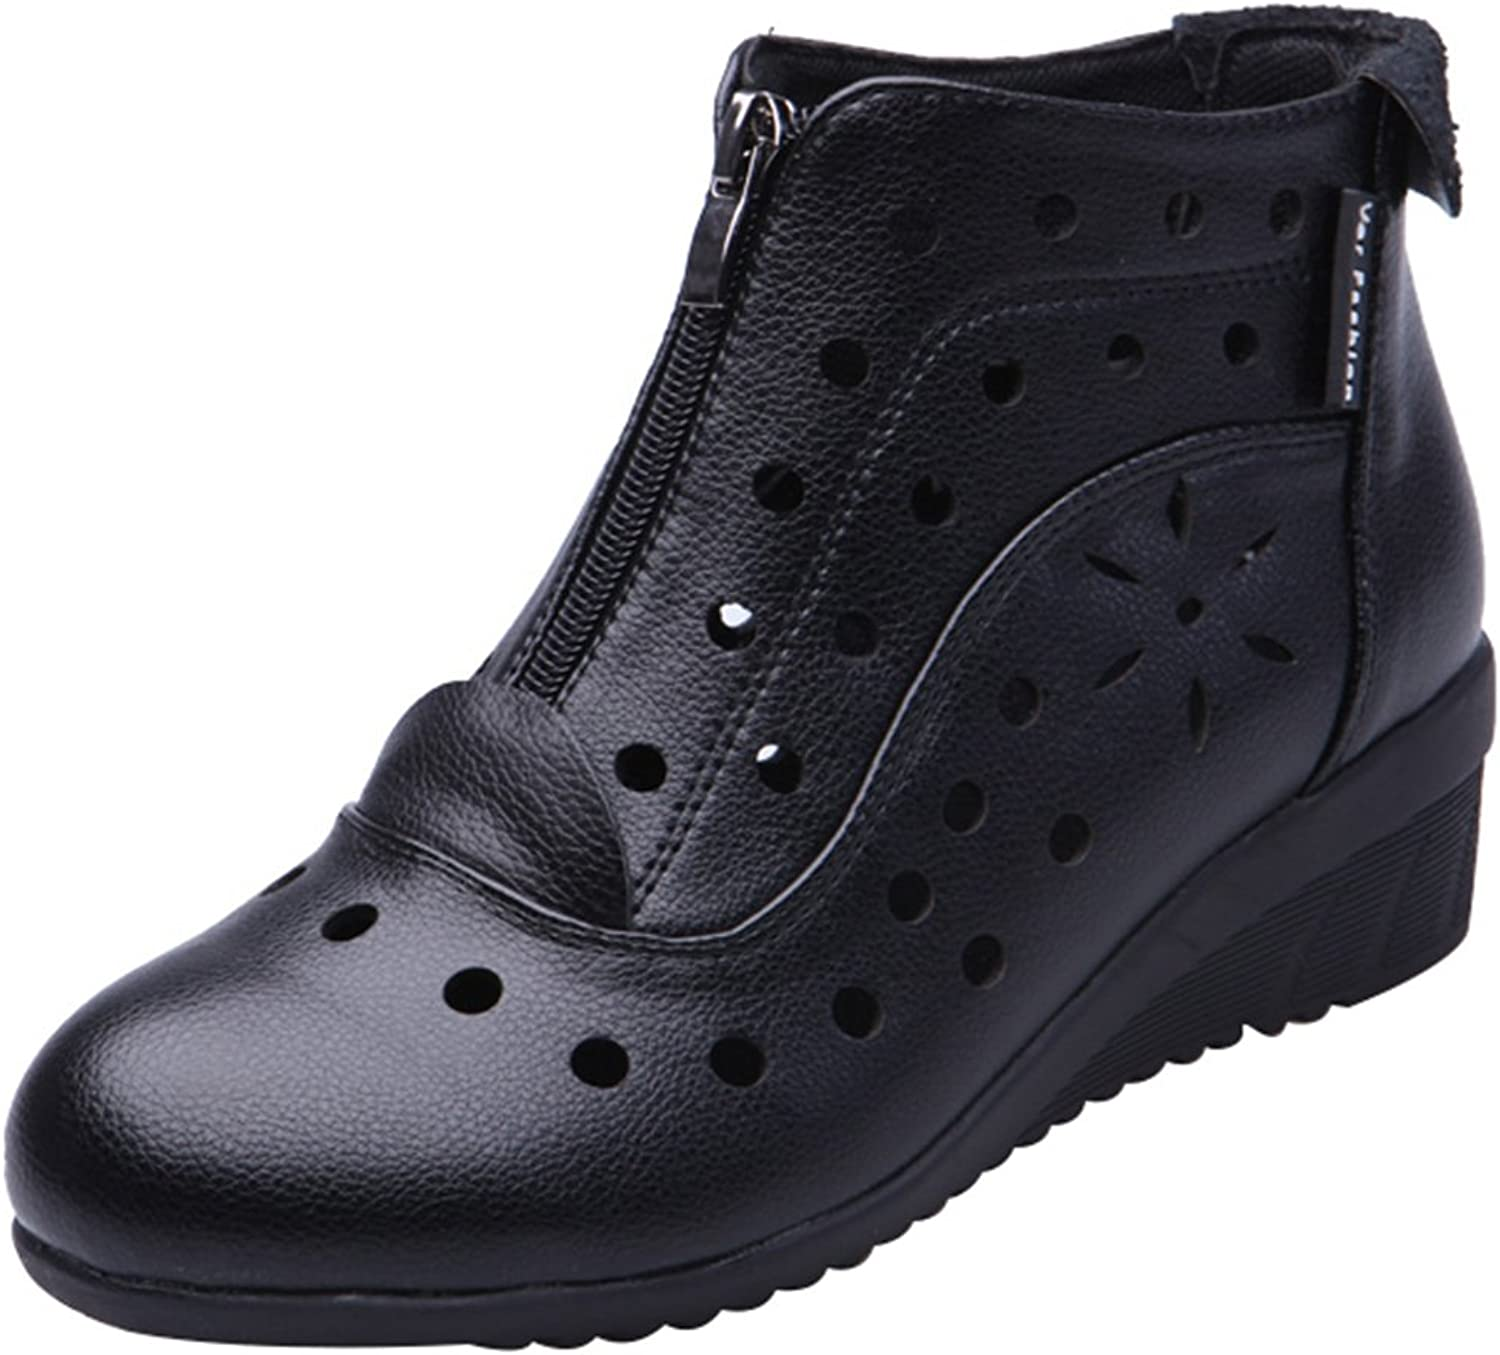 Abby 823 Womens Ballroom Casual Rumba Mid Top Wedge Cozy Breathable Holes Modern Round Toe Zip Dance shoes